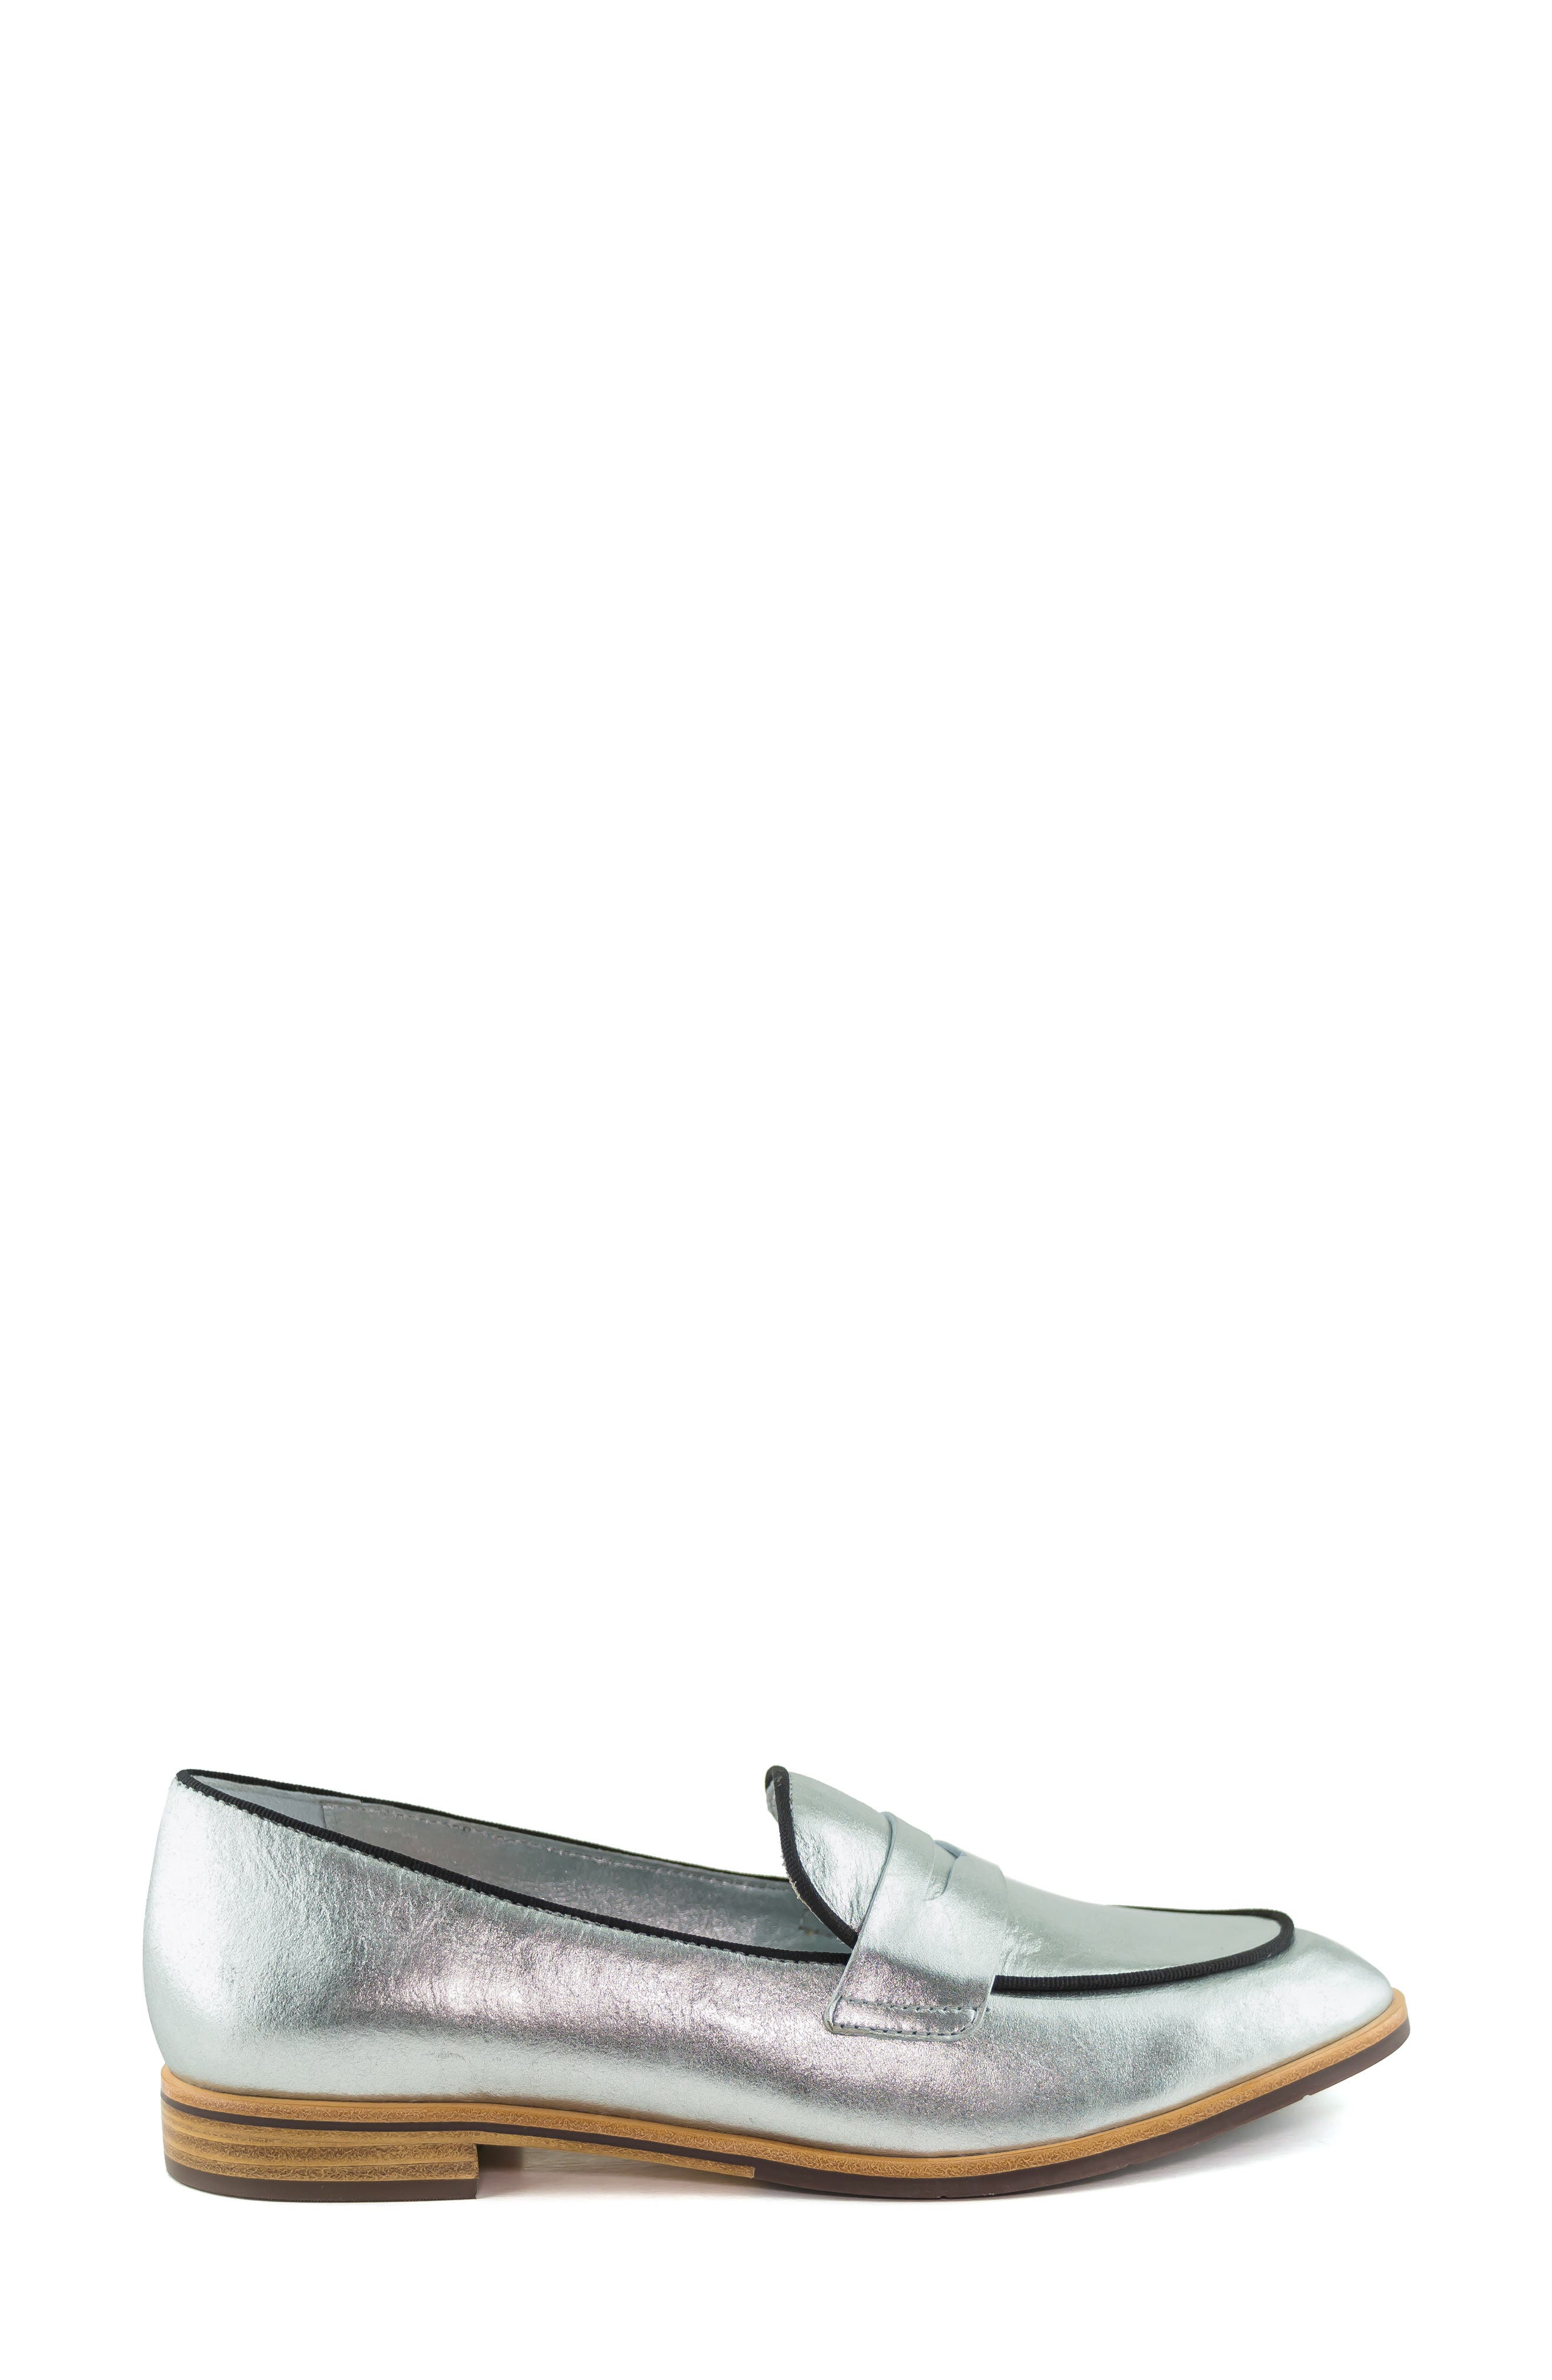 Bryant Park Loafer,                             Alternate thumbnail 3, color,                             GIPSY SILVER LEATHER